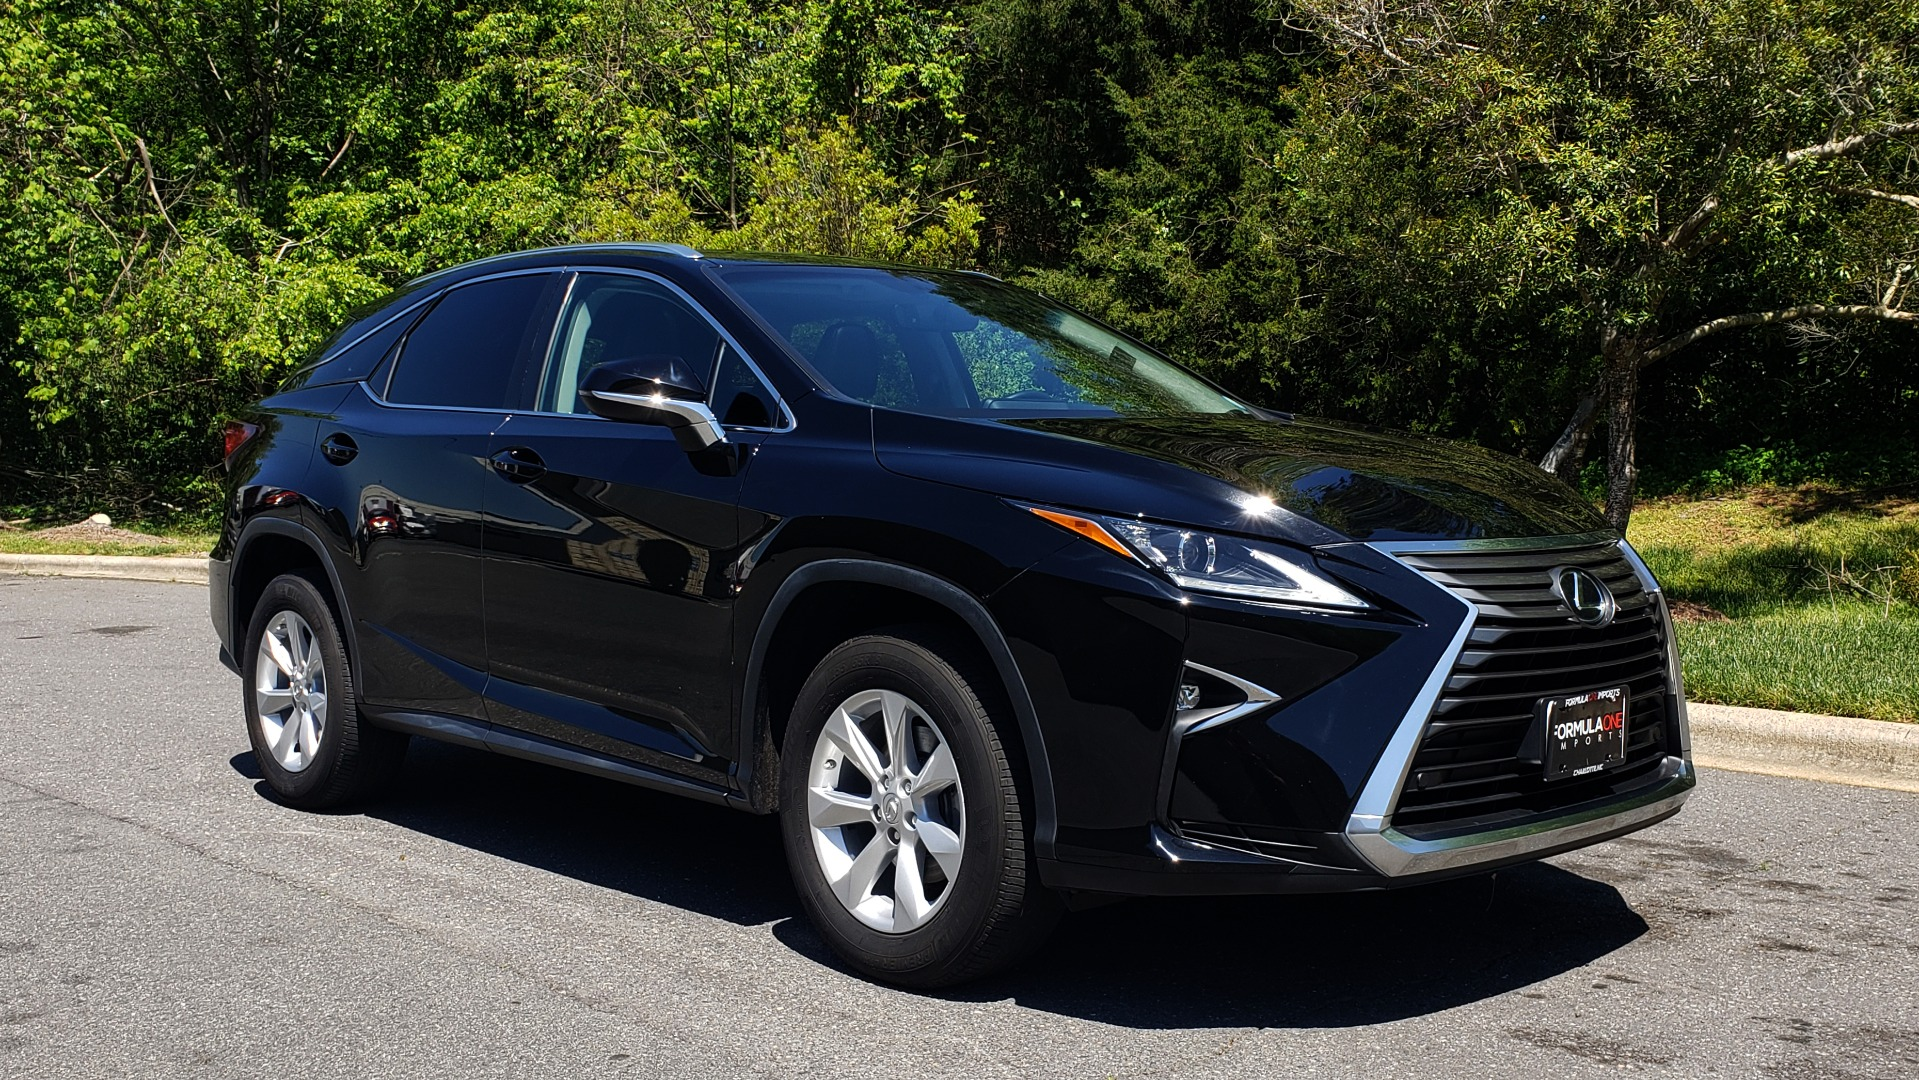 Used 2016 Lexus RX 350 PREMIUM / AWD / VENT SEATS / SUNROOF / BSM for sale Sold at Formula Imports in Charlotte NC 28227 4